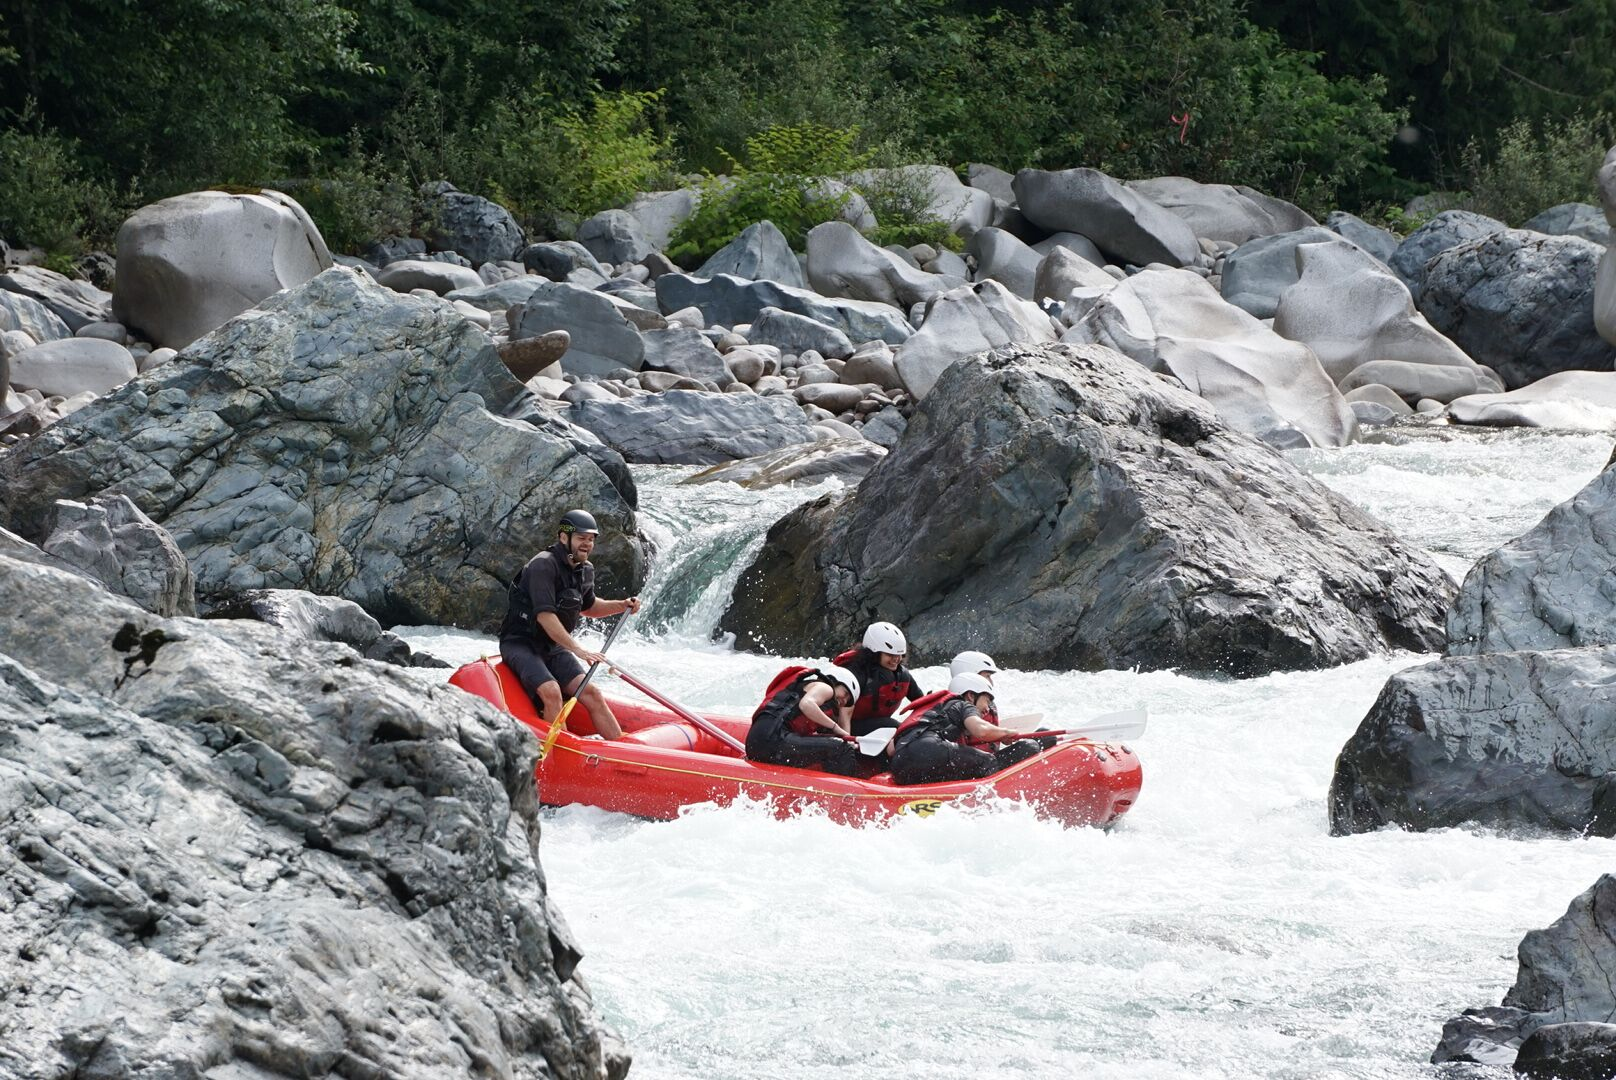 A good rafting story makes you feel as though you ran the wave-train or fished out the swimmers yourself.